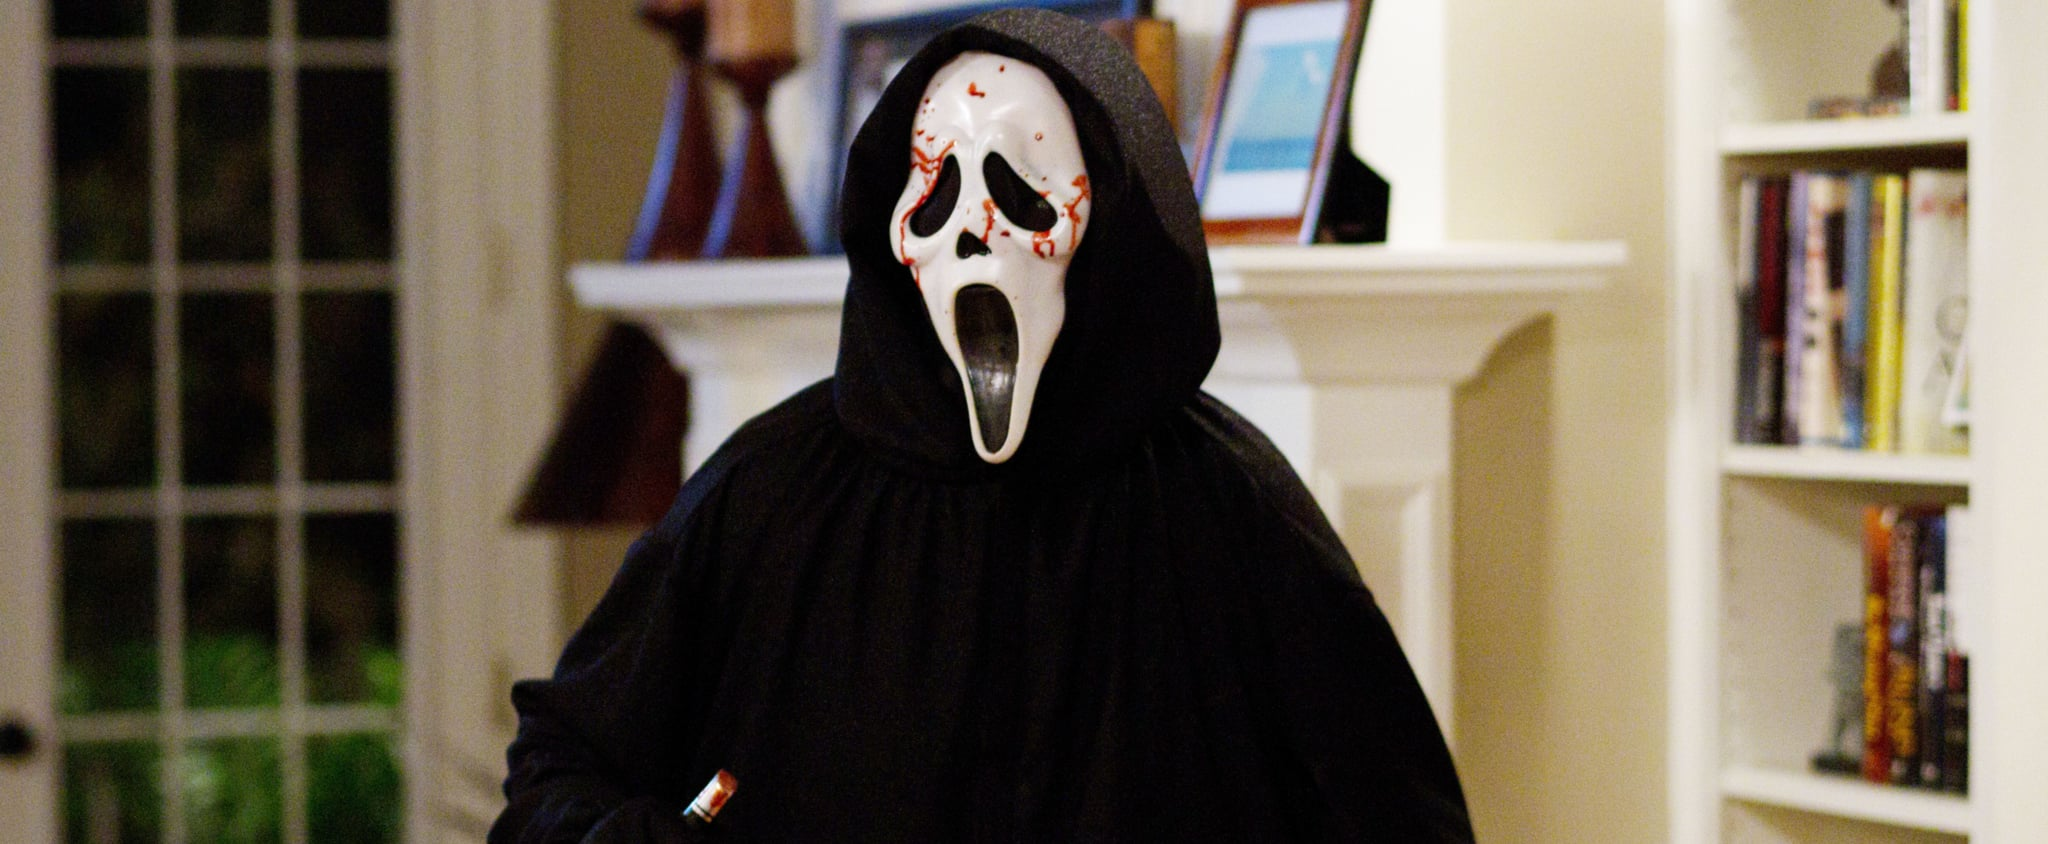 What Is the Ghostface Trend on TikTok?